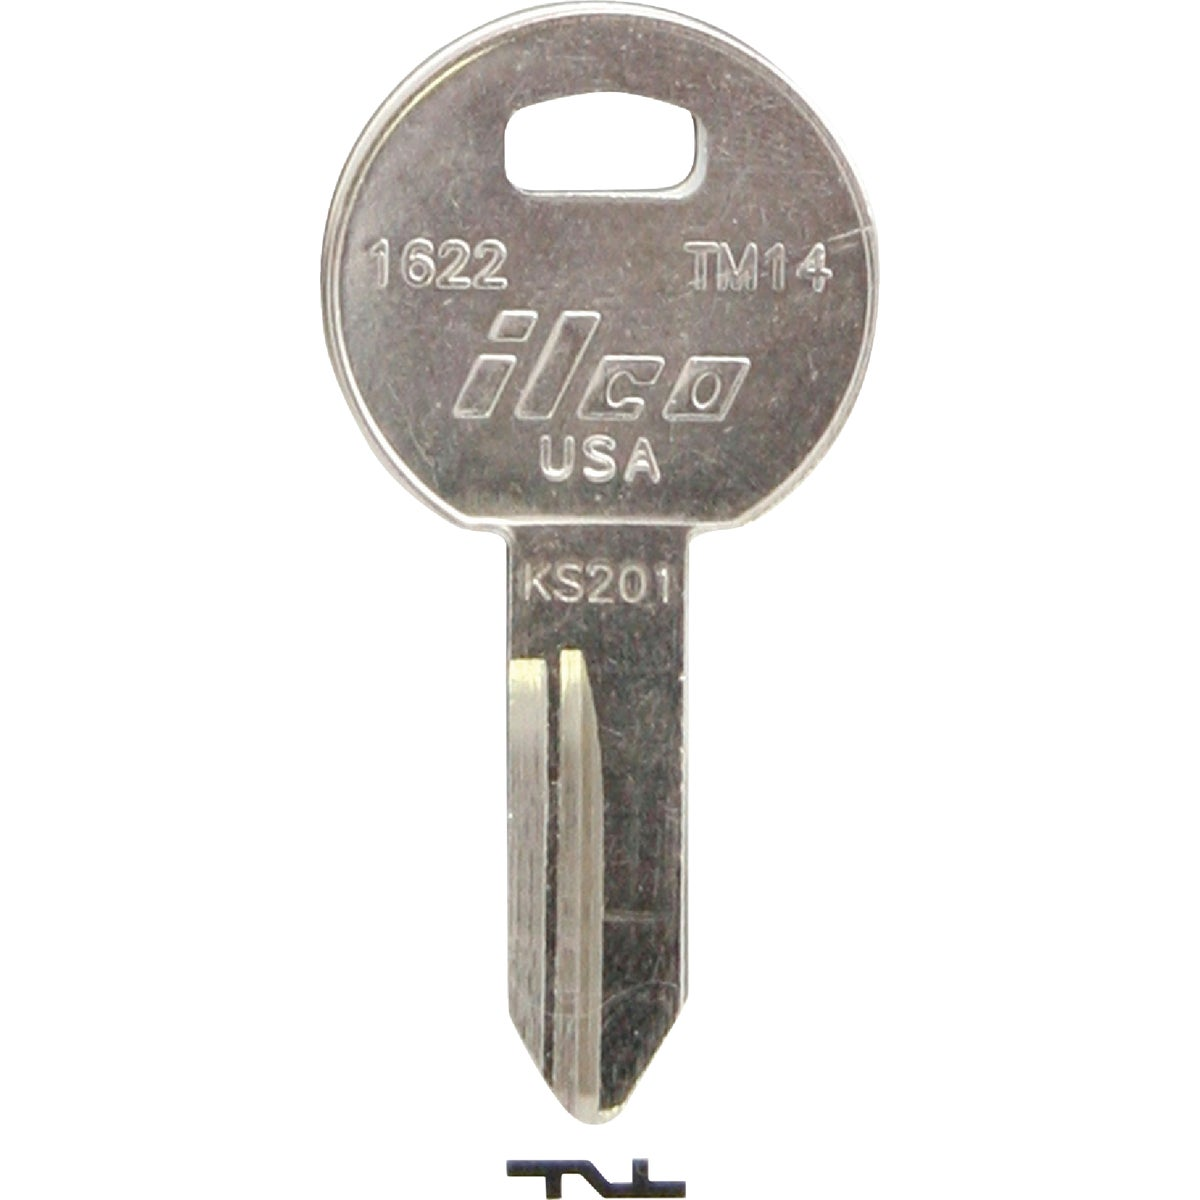 TM14 TRIMRK TRUCK BX KEY - 1622 by Ilco Corp